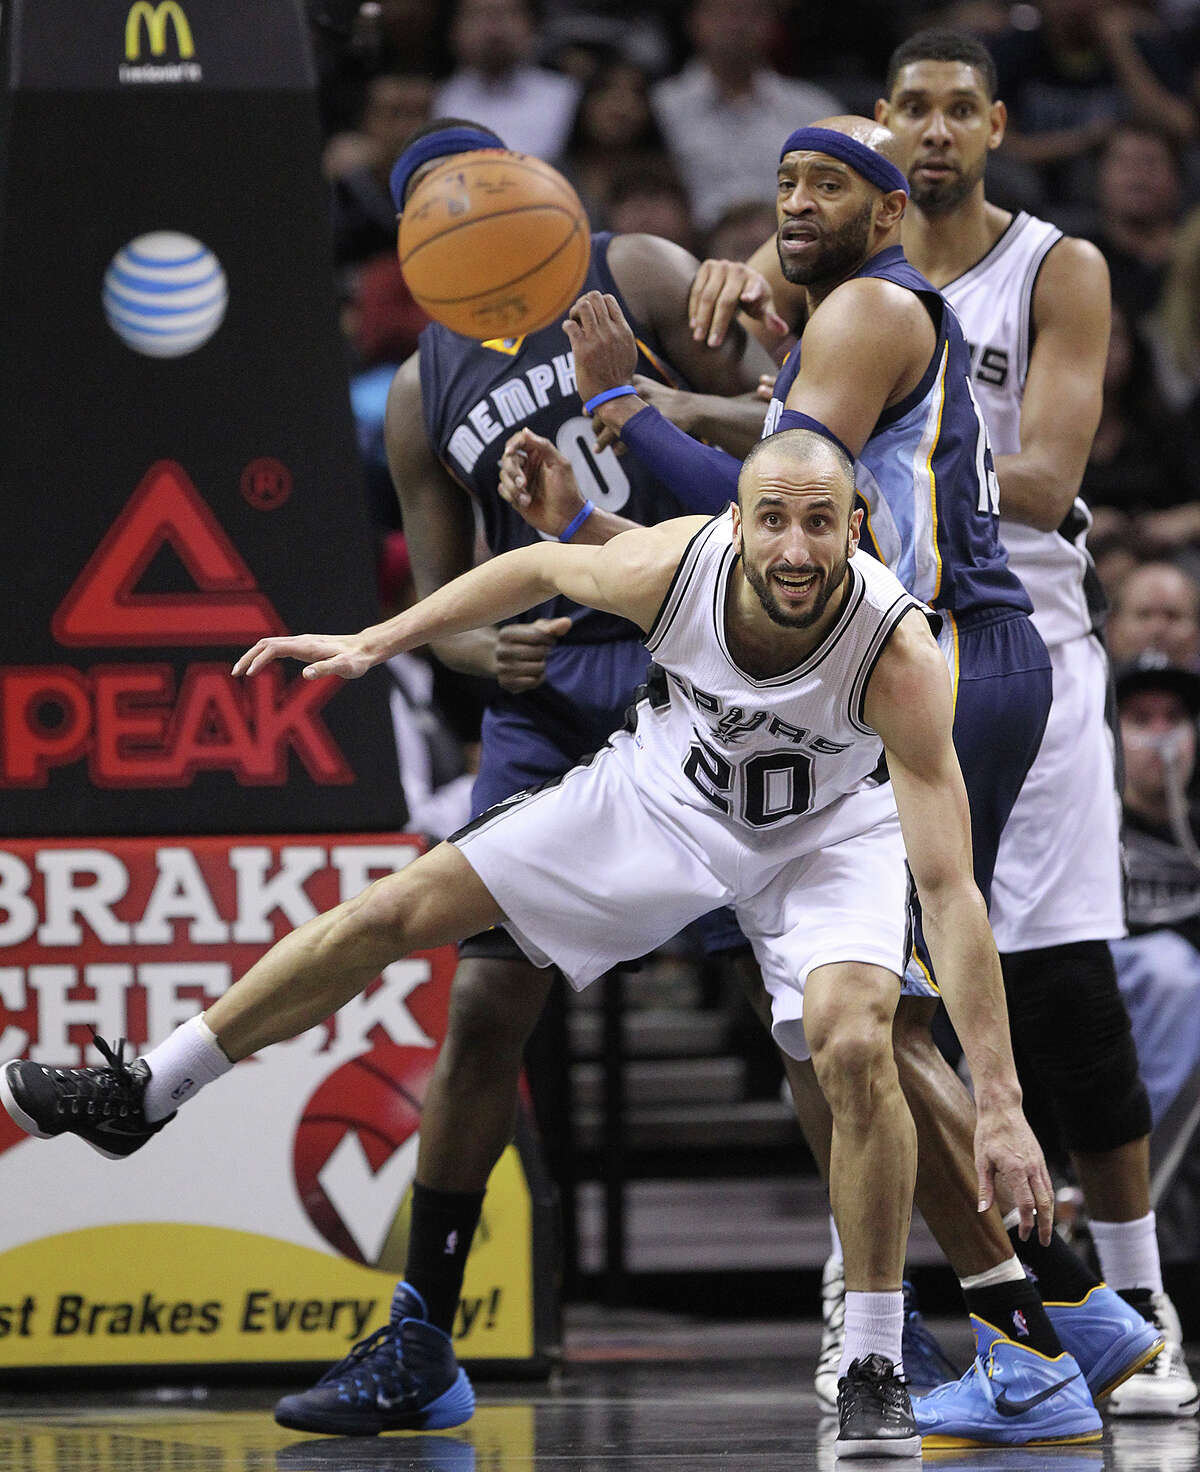 The bouncing ball, and victory, eluded Manu Ginobili (front), Tim Duncan (back) and the Spurs in Wednesday's triple-OT loss to Memphis. Tonight marks a quick turnaround against Portland.